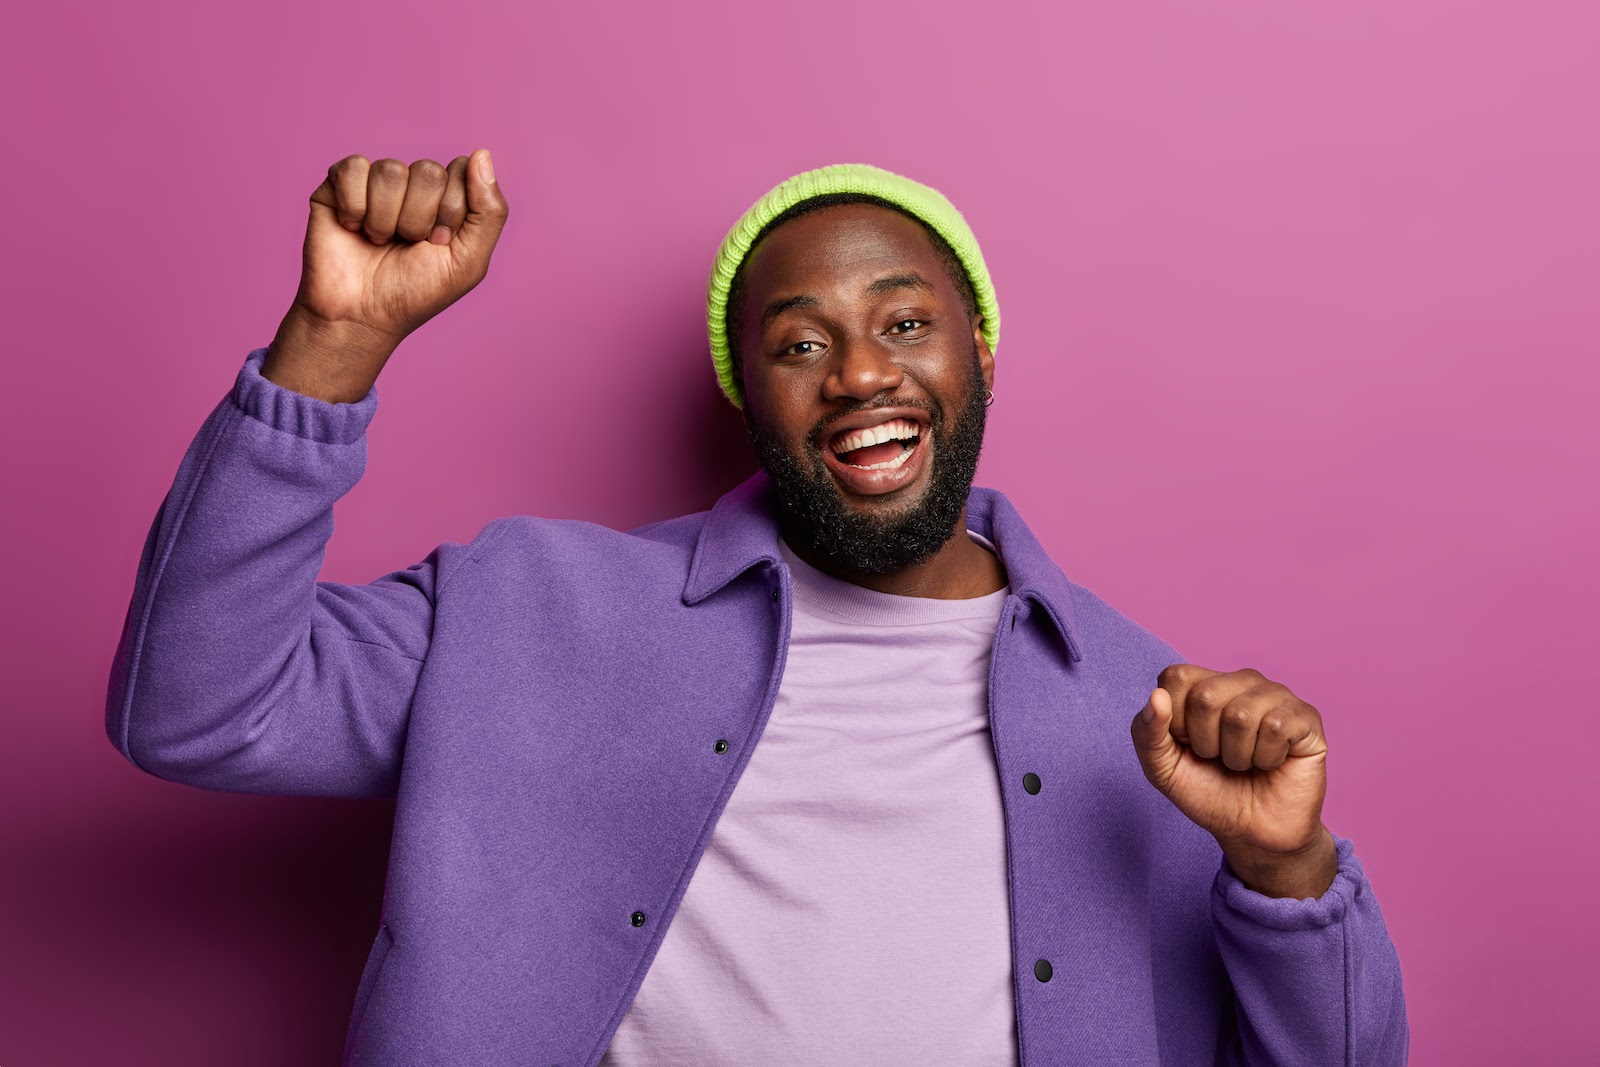 An excited employee on a pink background